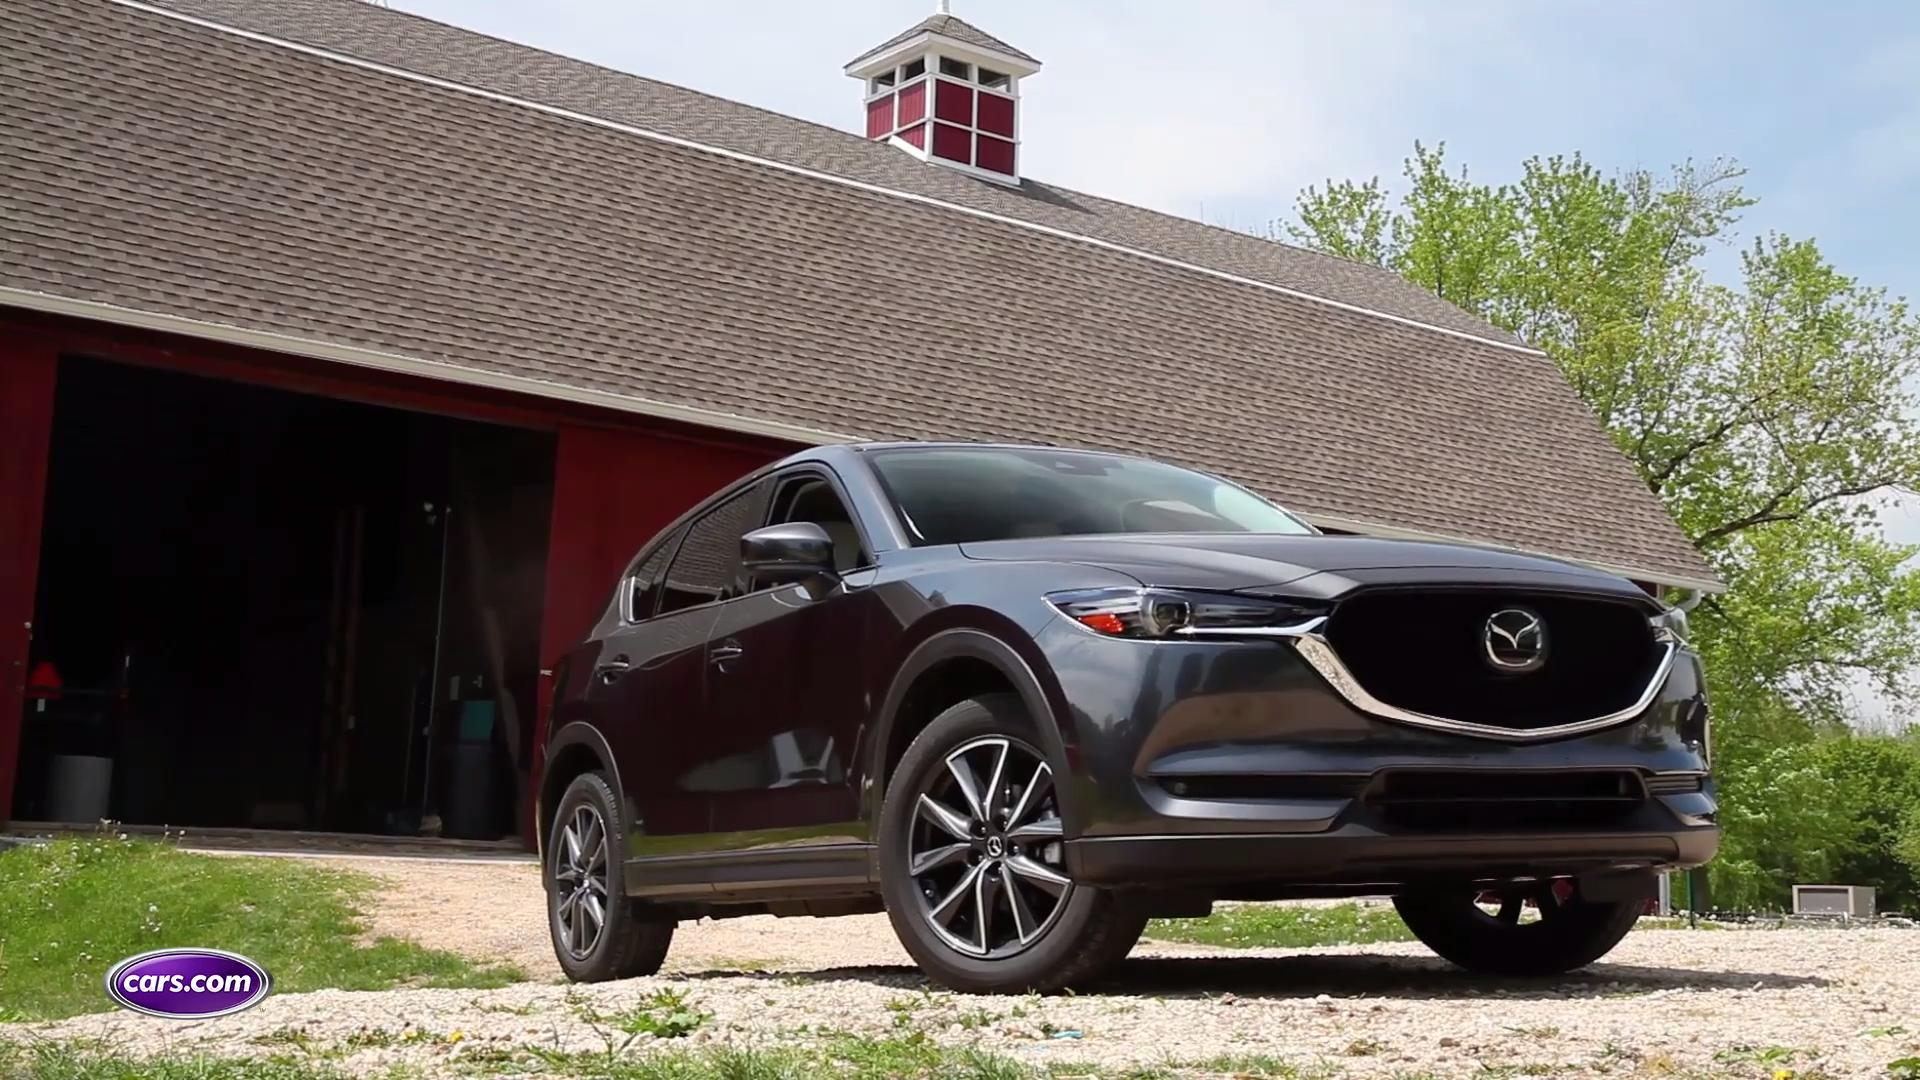 Video: 2017 Mazda CX-5 Review